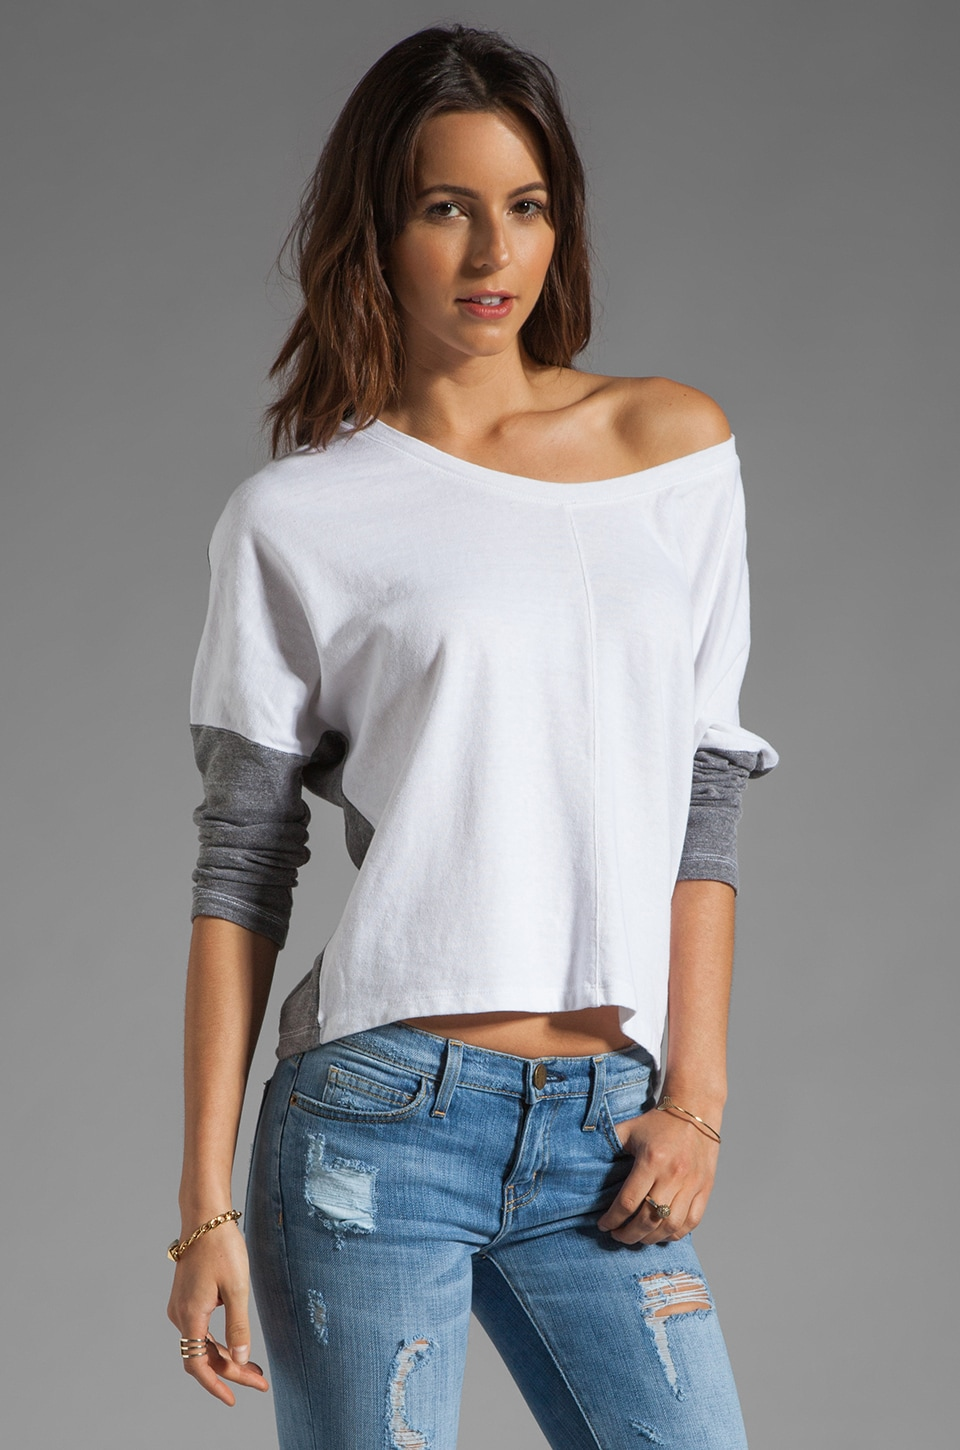 MONROW Two Tone Sweatshirt in White